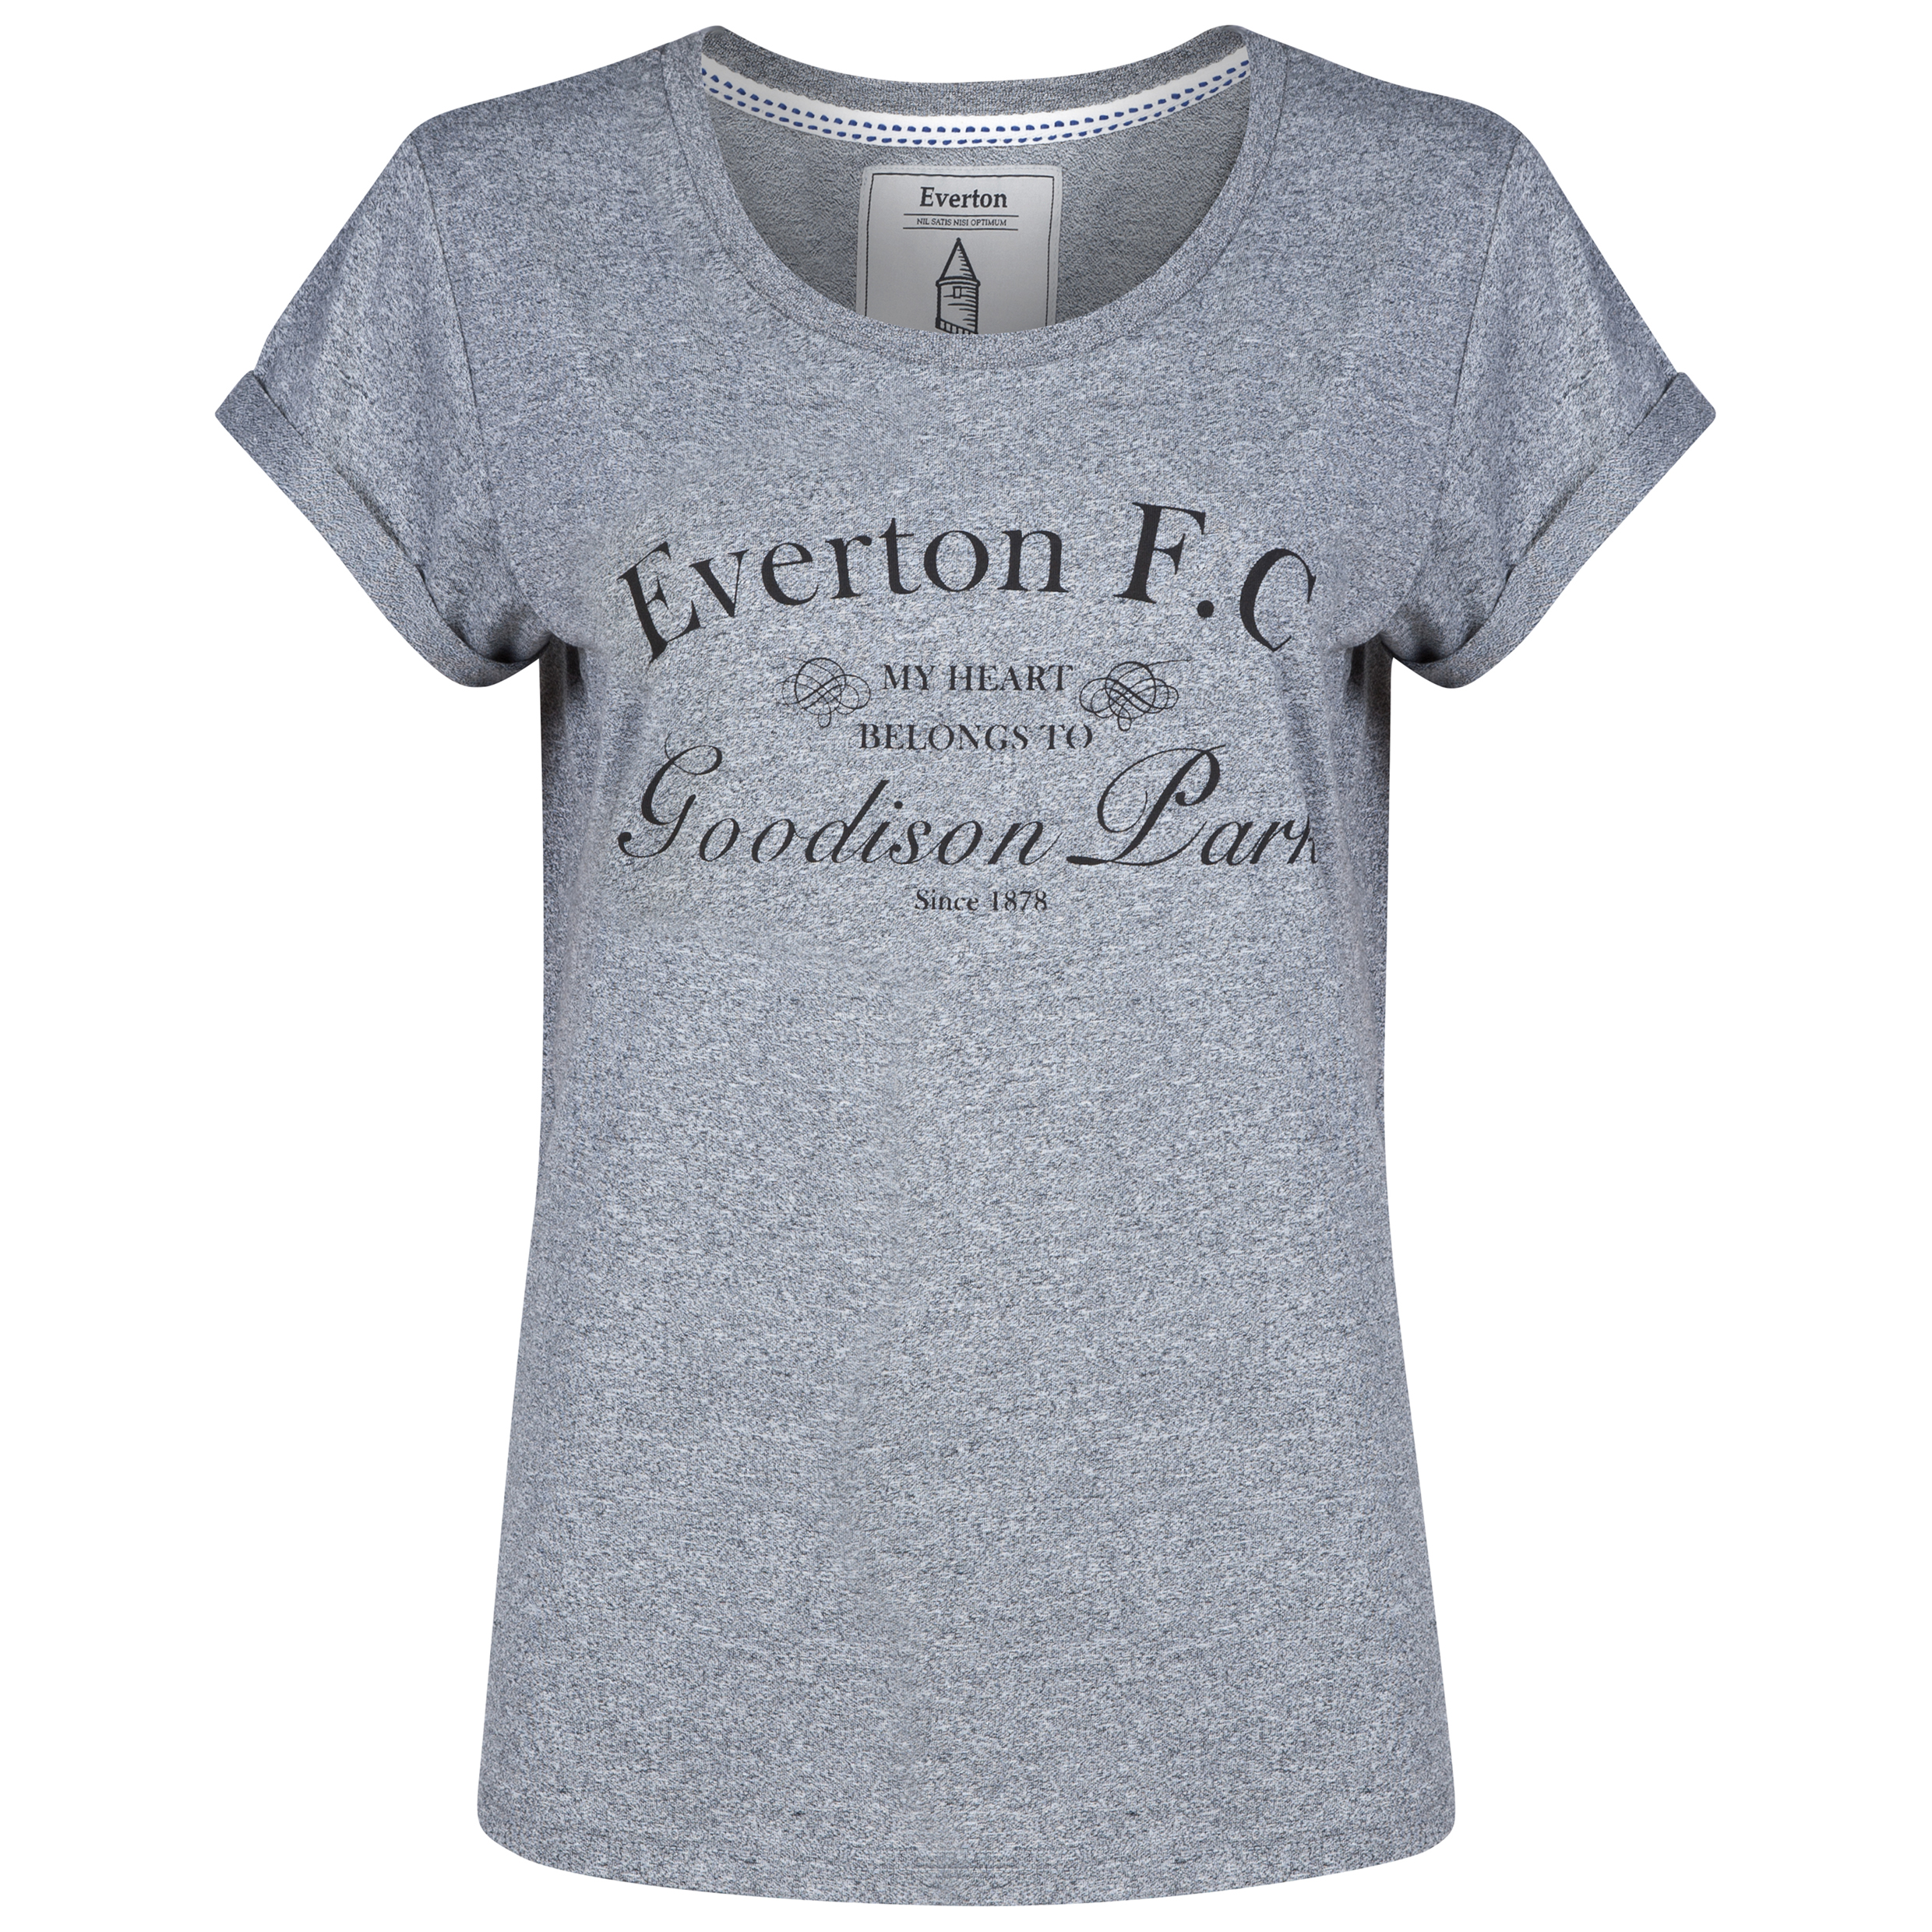 Everton T-Shirt - Grey Marl - Womens